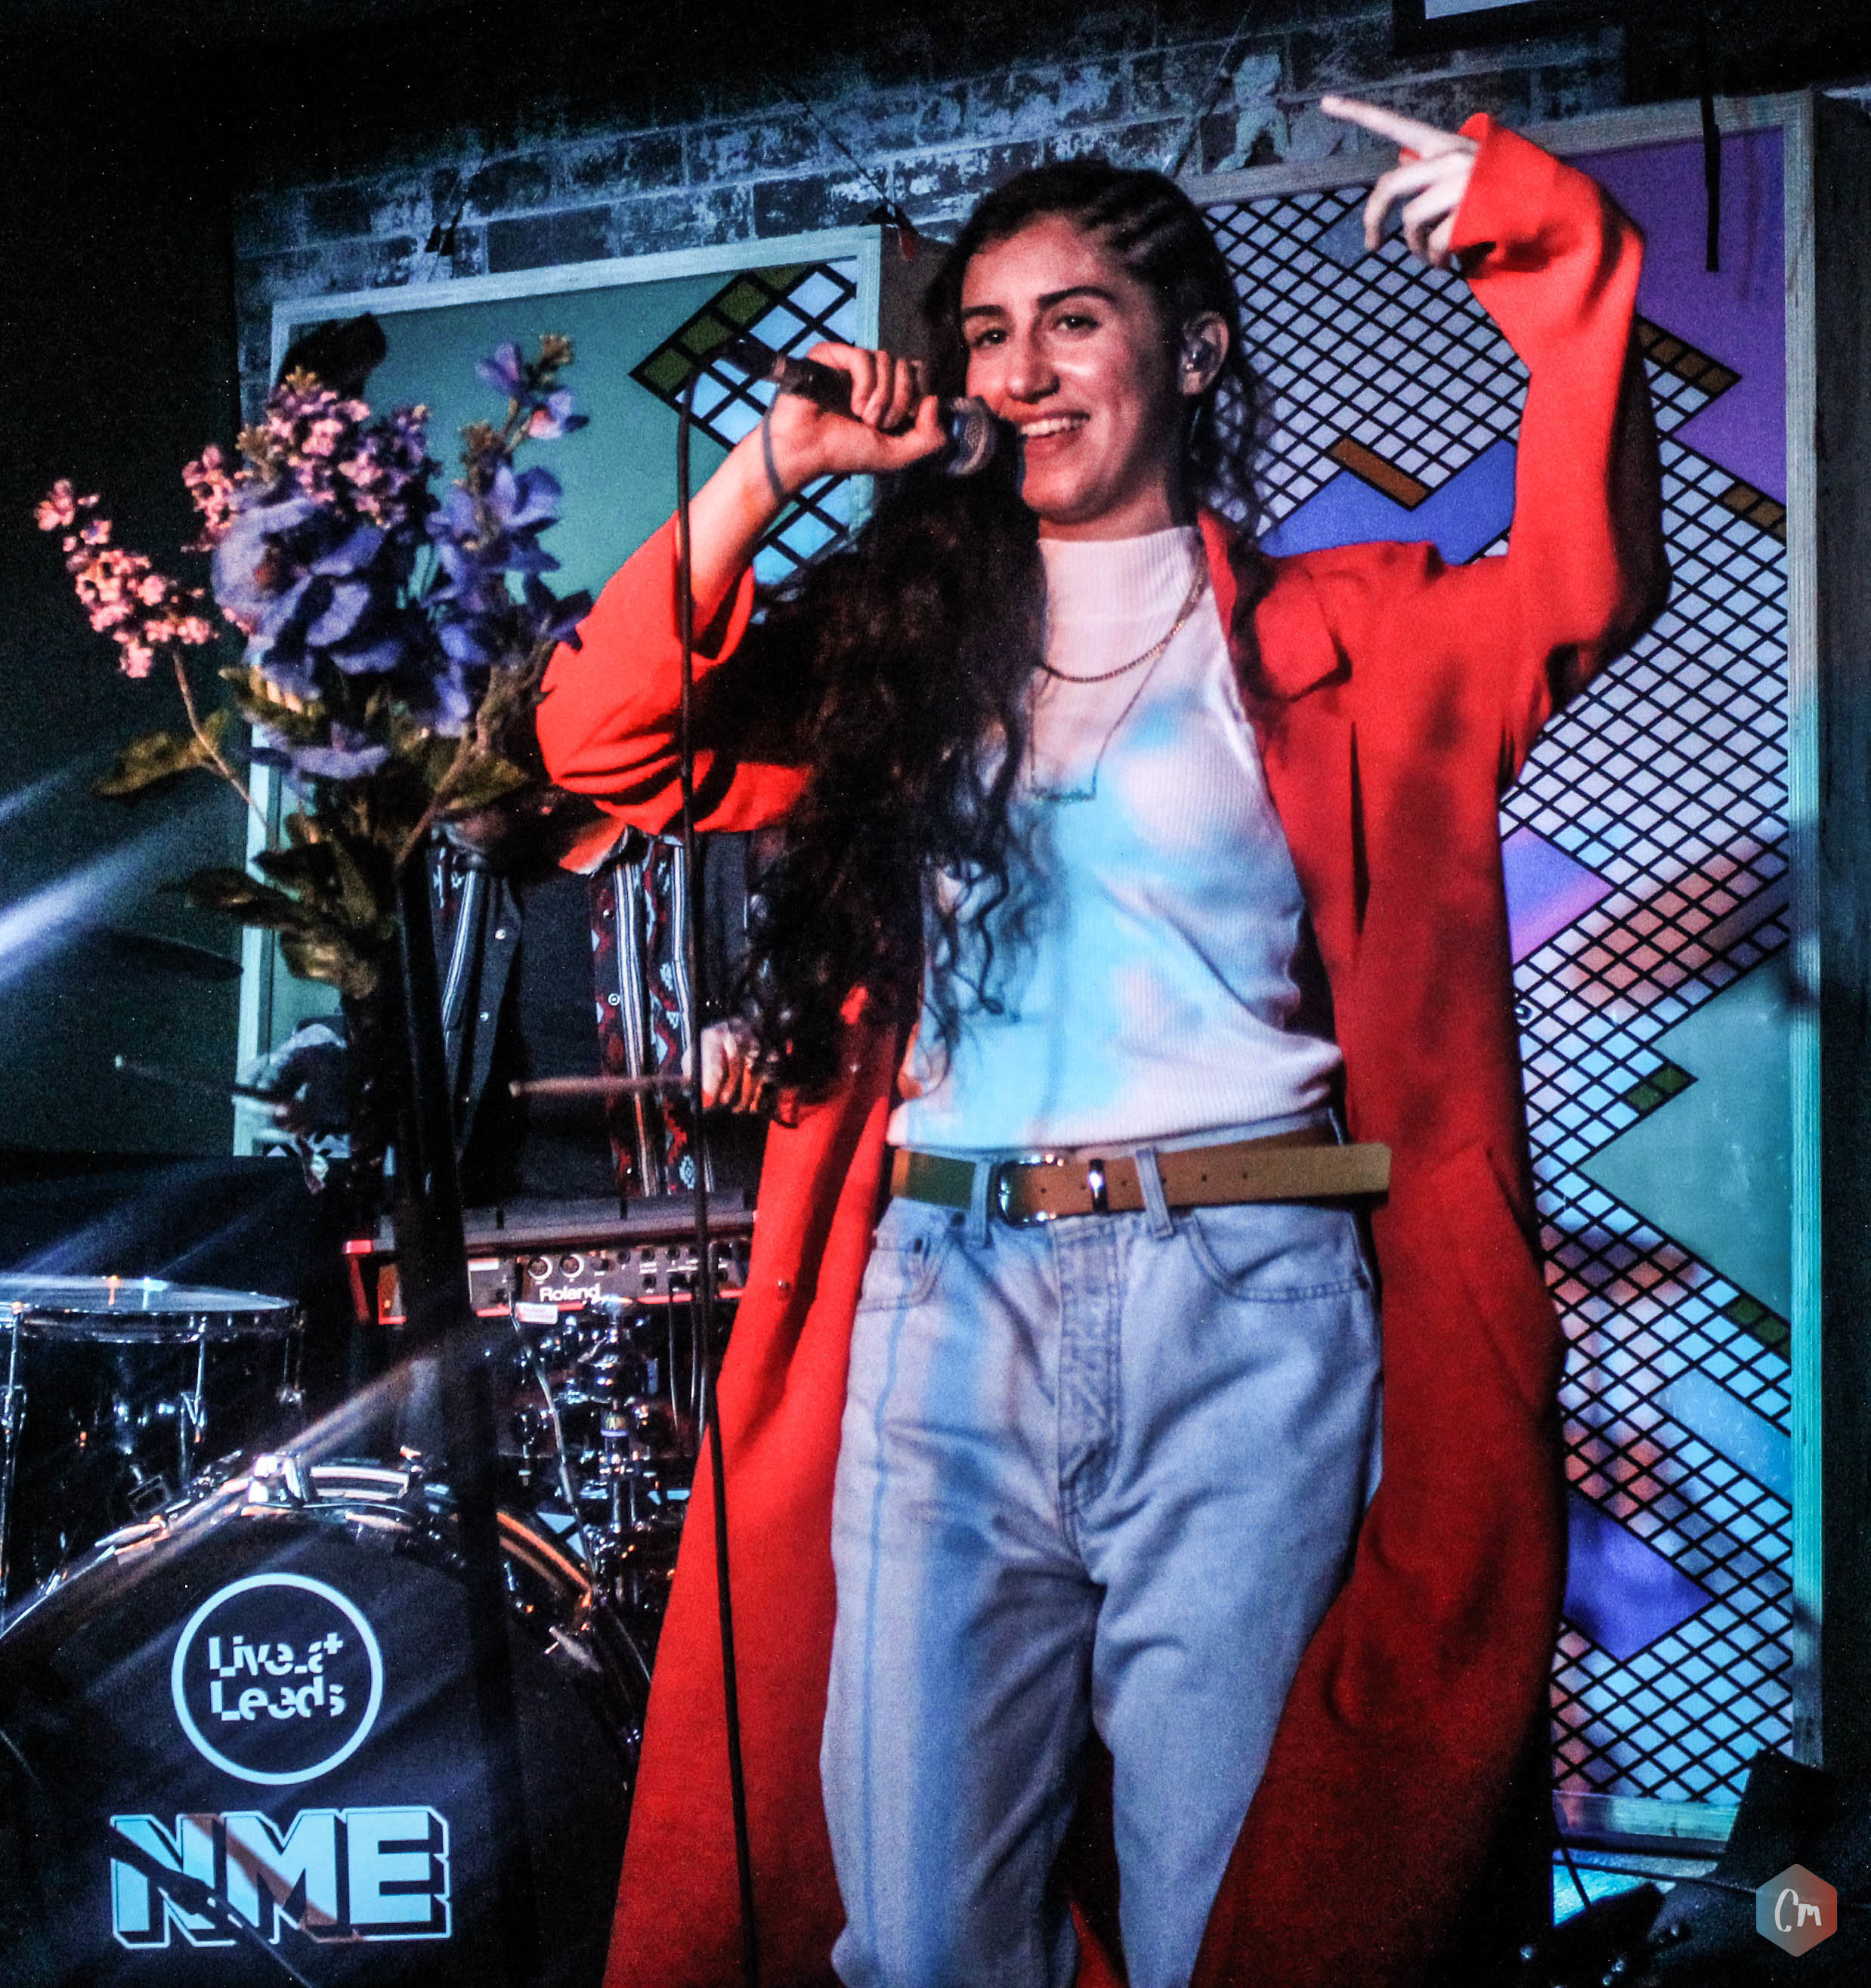 Naaz at Live at Leeds - Photo © Concentus Music - Reproduction without permission not permitted